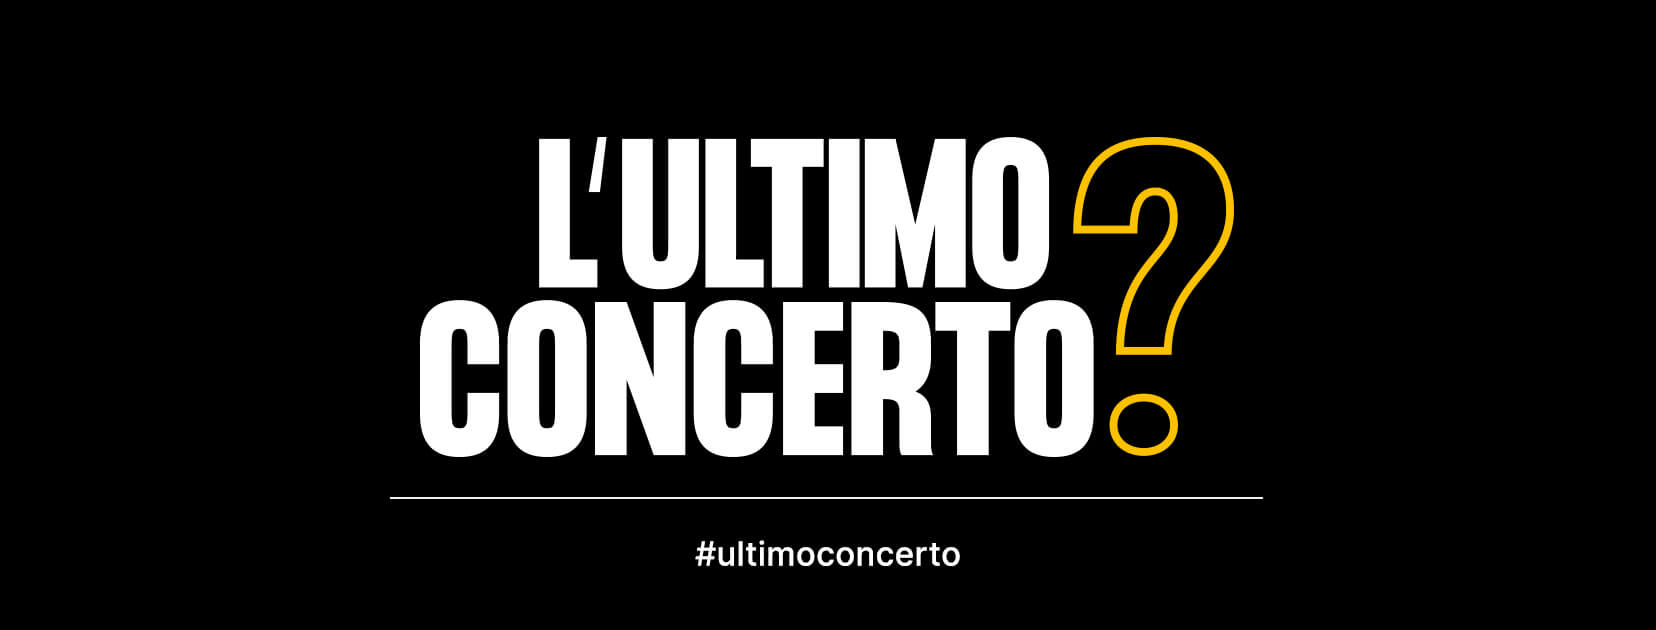 L'ultimo concerto? oltre 130 live club uniti in uno streaming aggratis